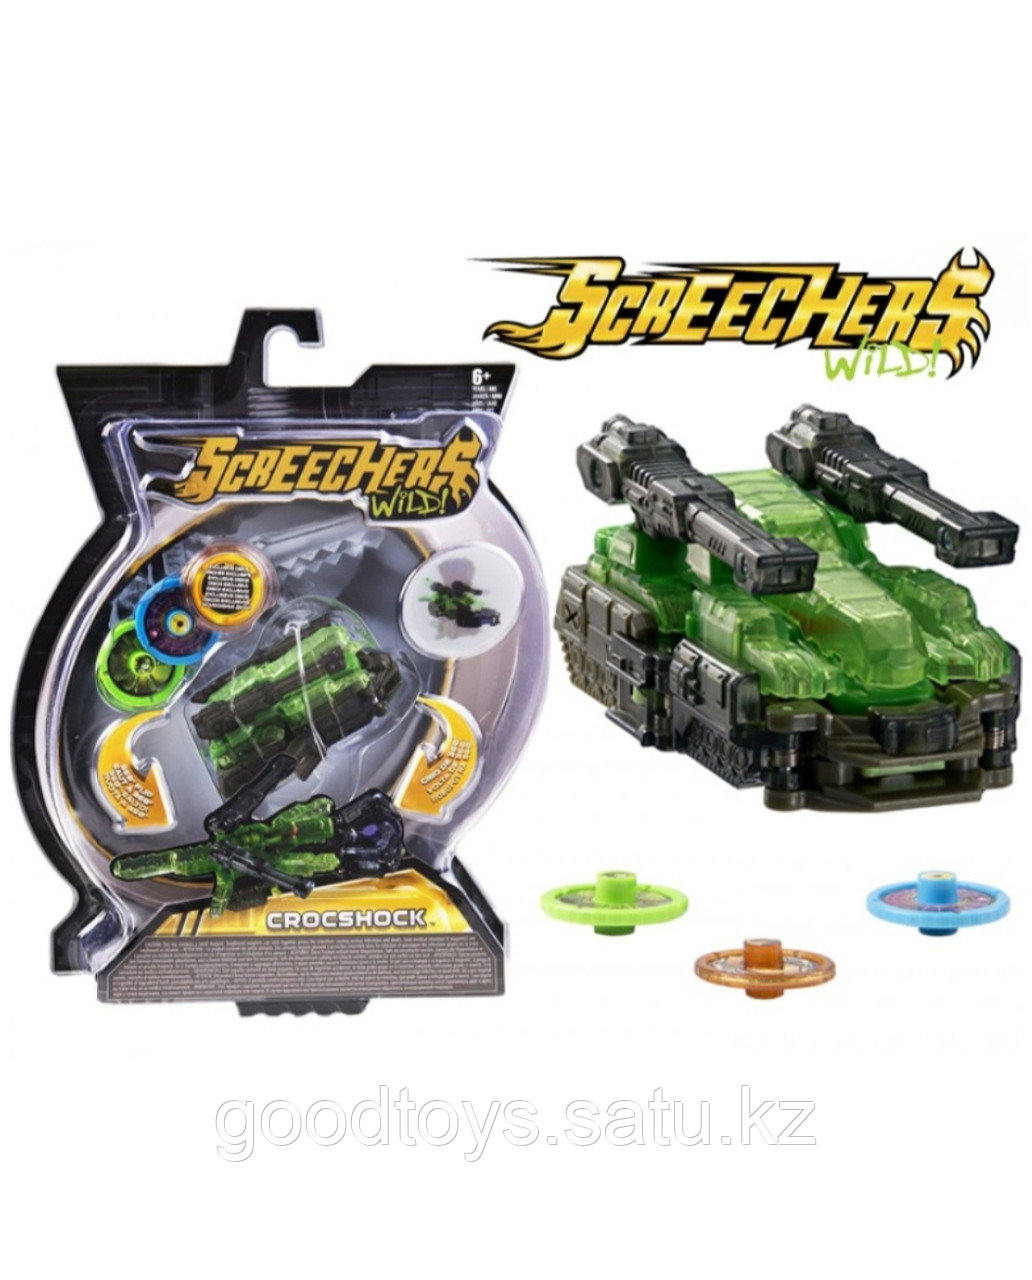 Screechers wild Crocshock original